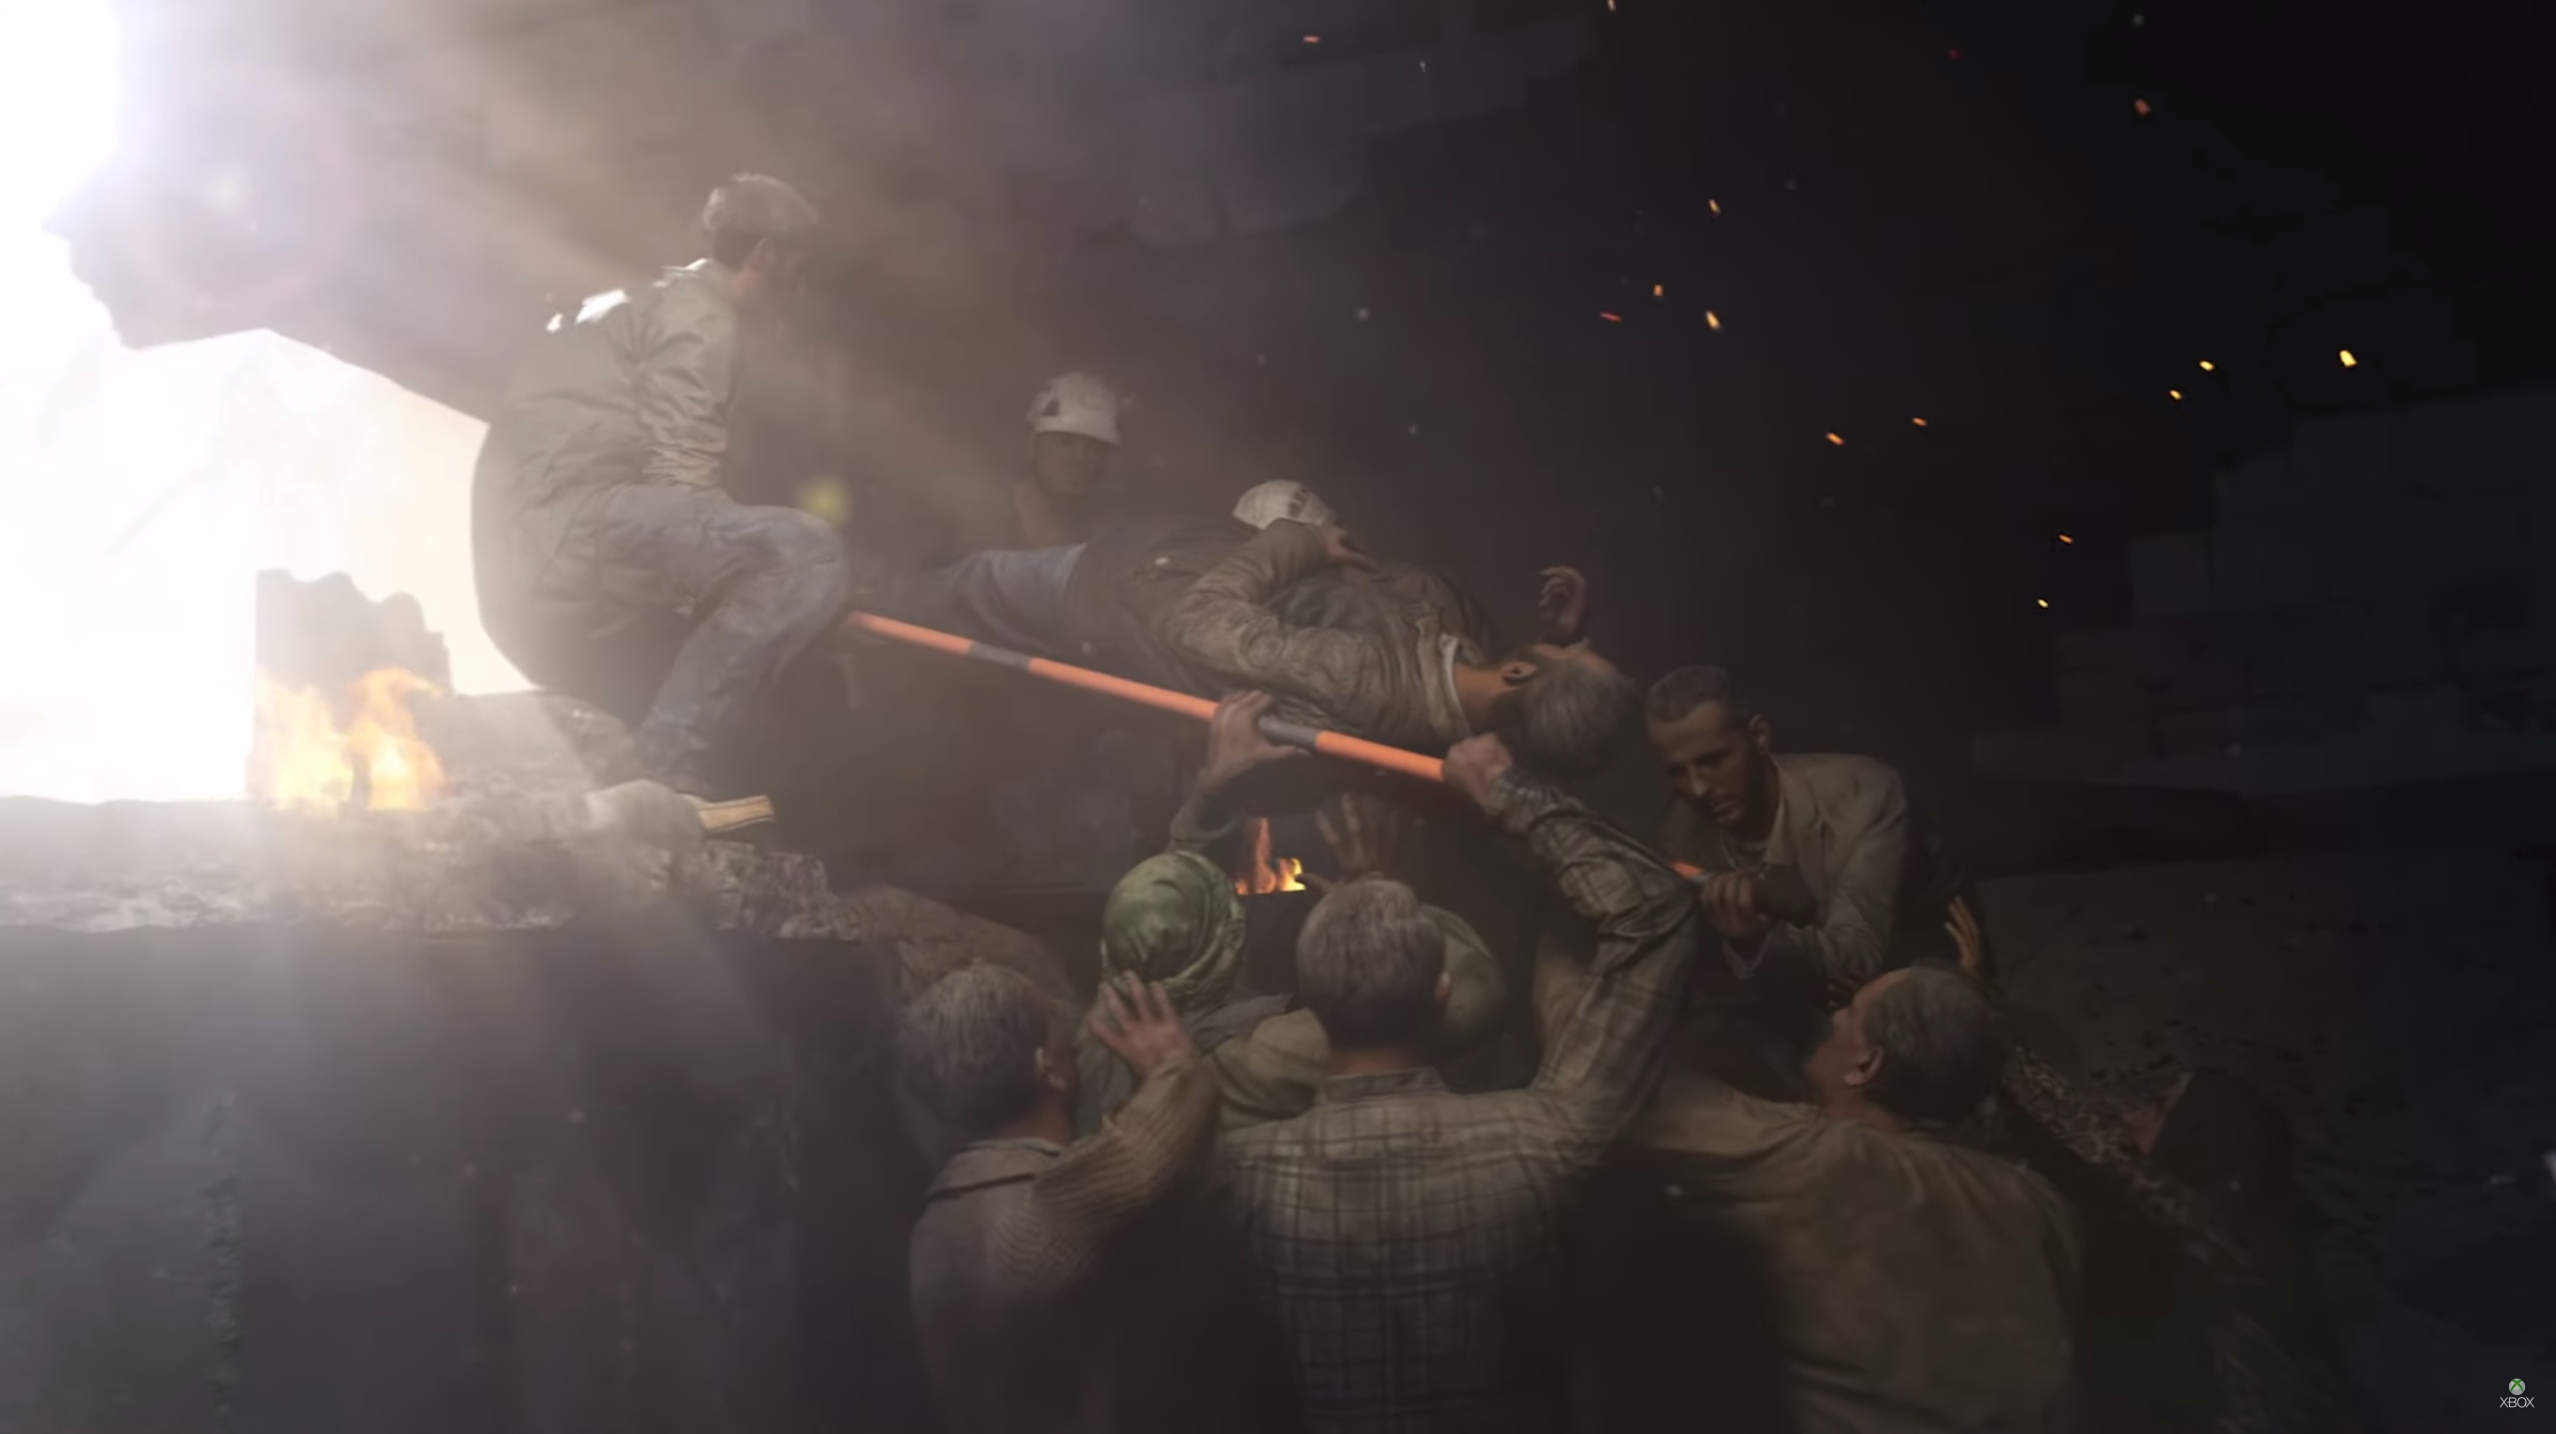 The White Helmets in a Call of Duty: Modern Warfare trailer scene helping victims of a presumed Russian air attack